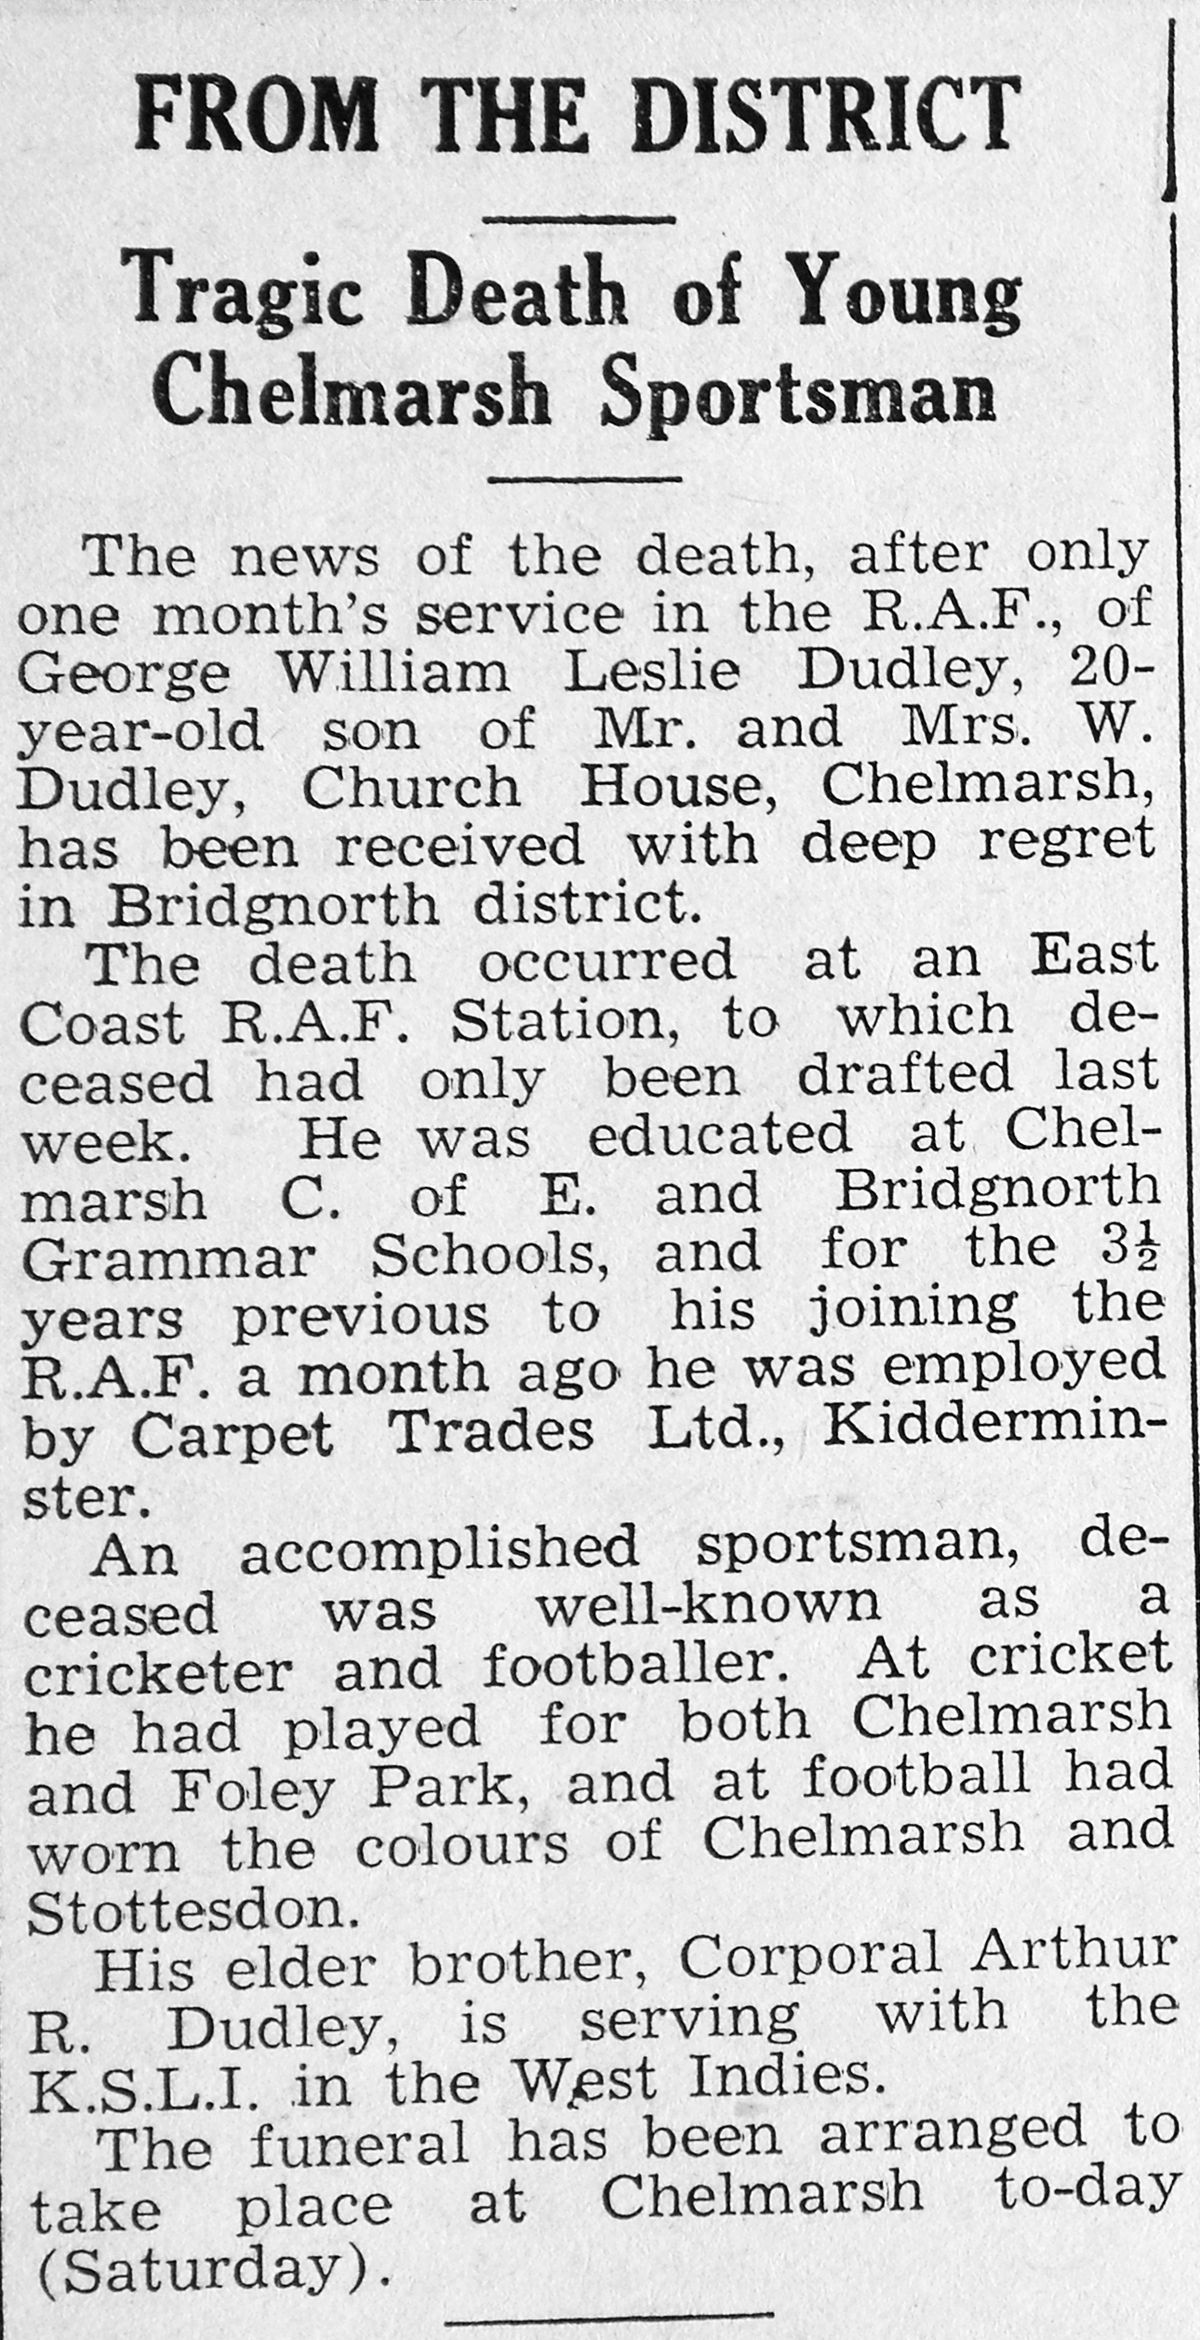 George had served in the RAF less than a month when he was killed in a bombing raid.